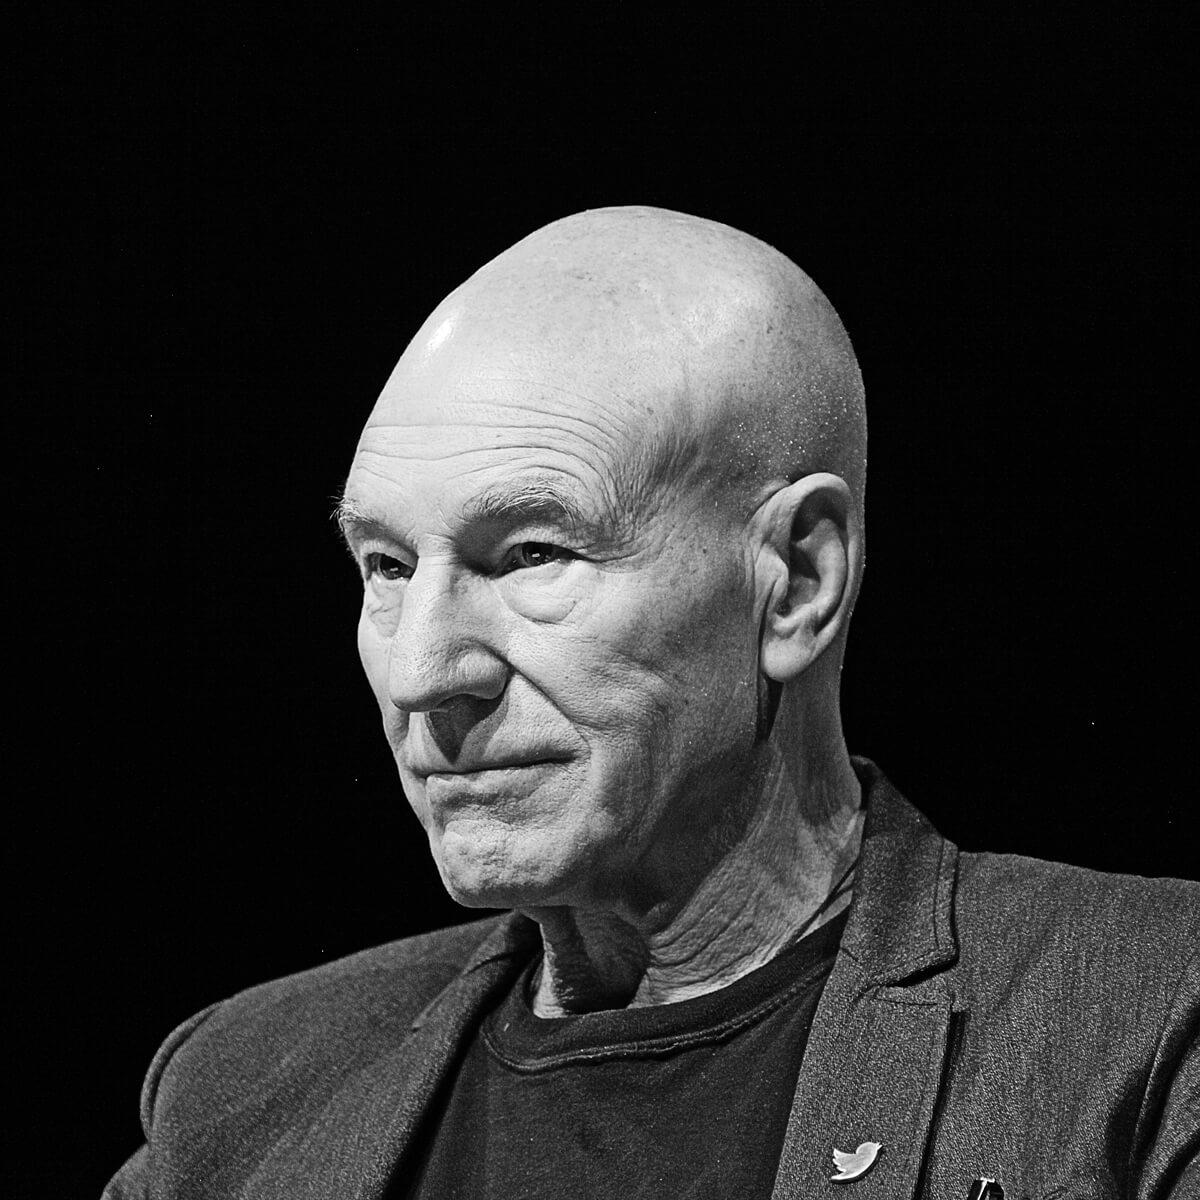 Photograph of English actor Sir Patrick Stewart by Julian Hanford at Cannes Lions 2017